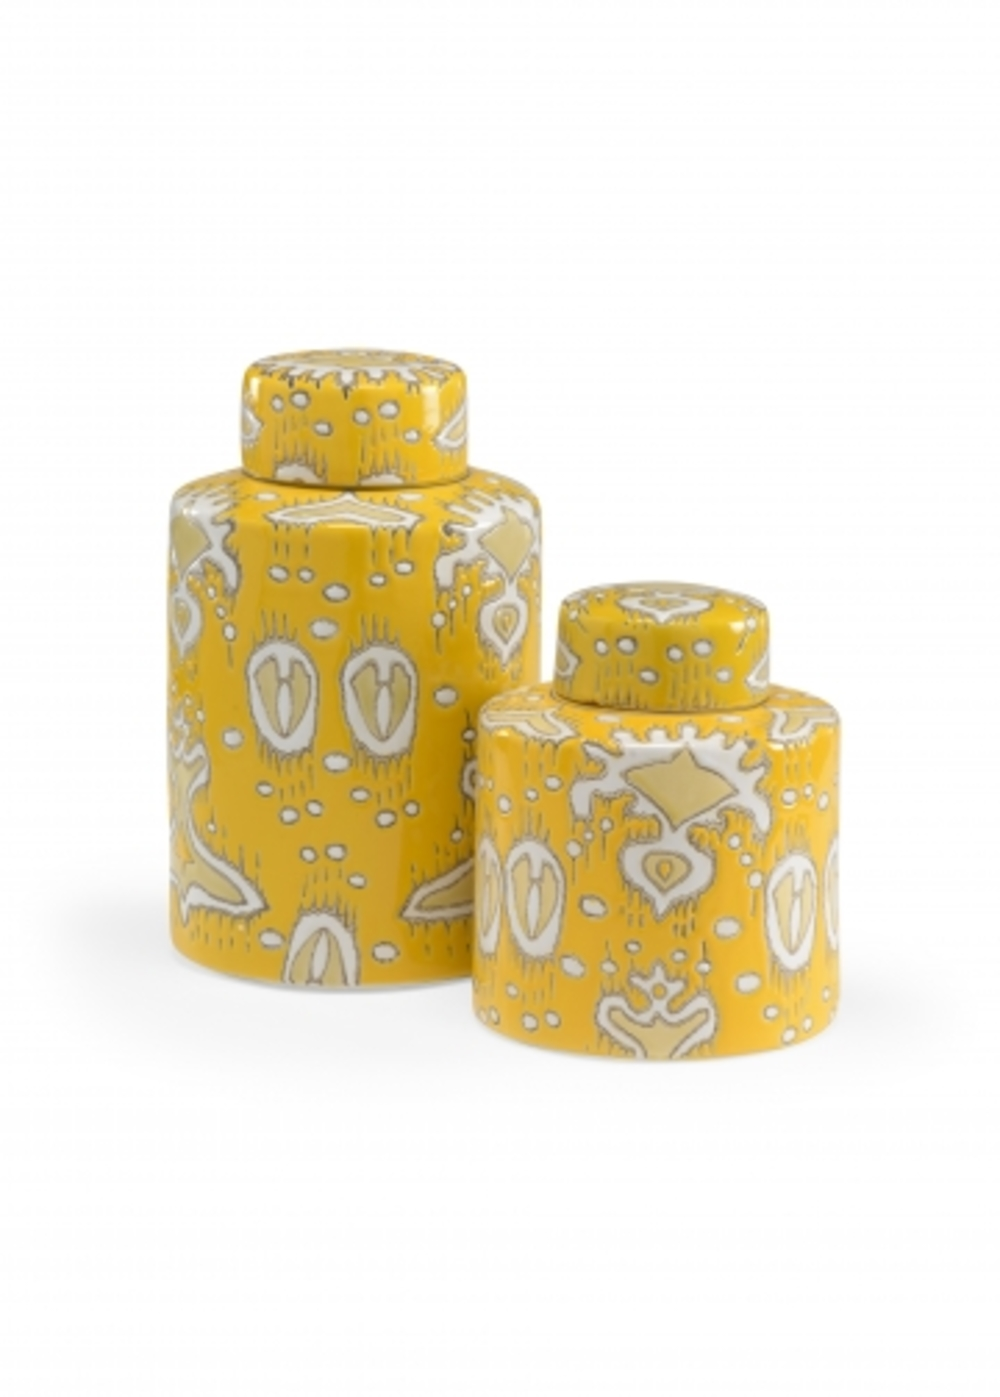 Wildwood Lamp - Yellow Cannisters, Set/2